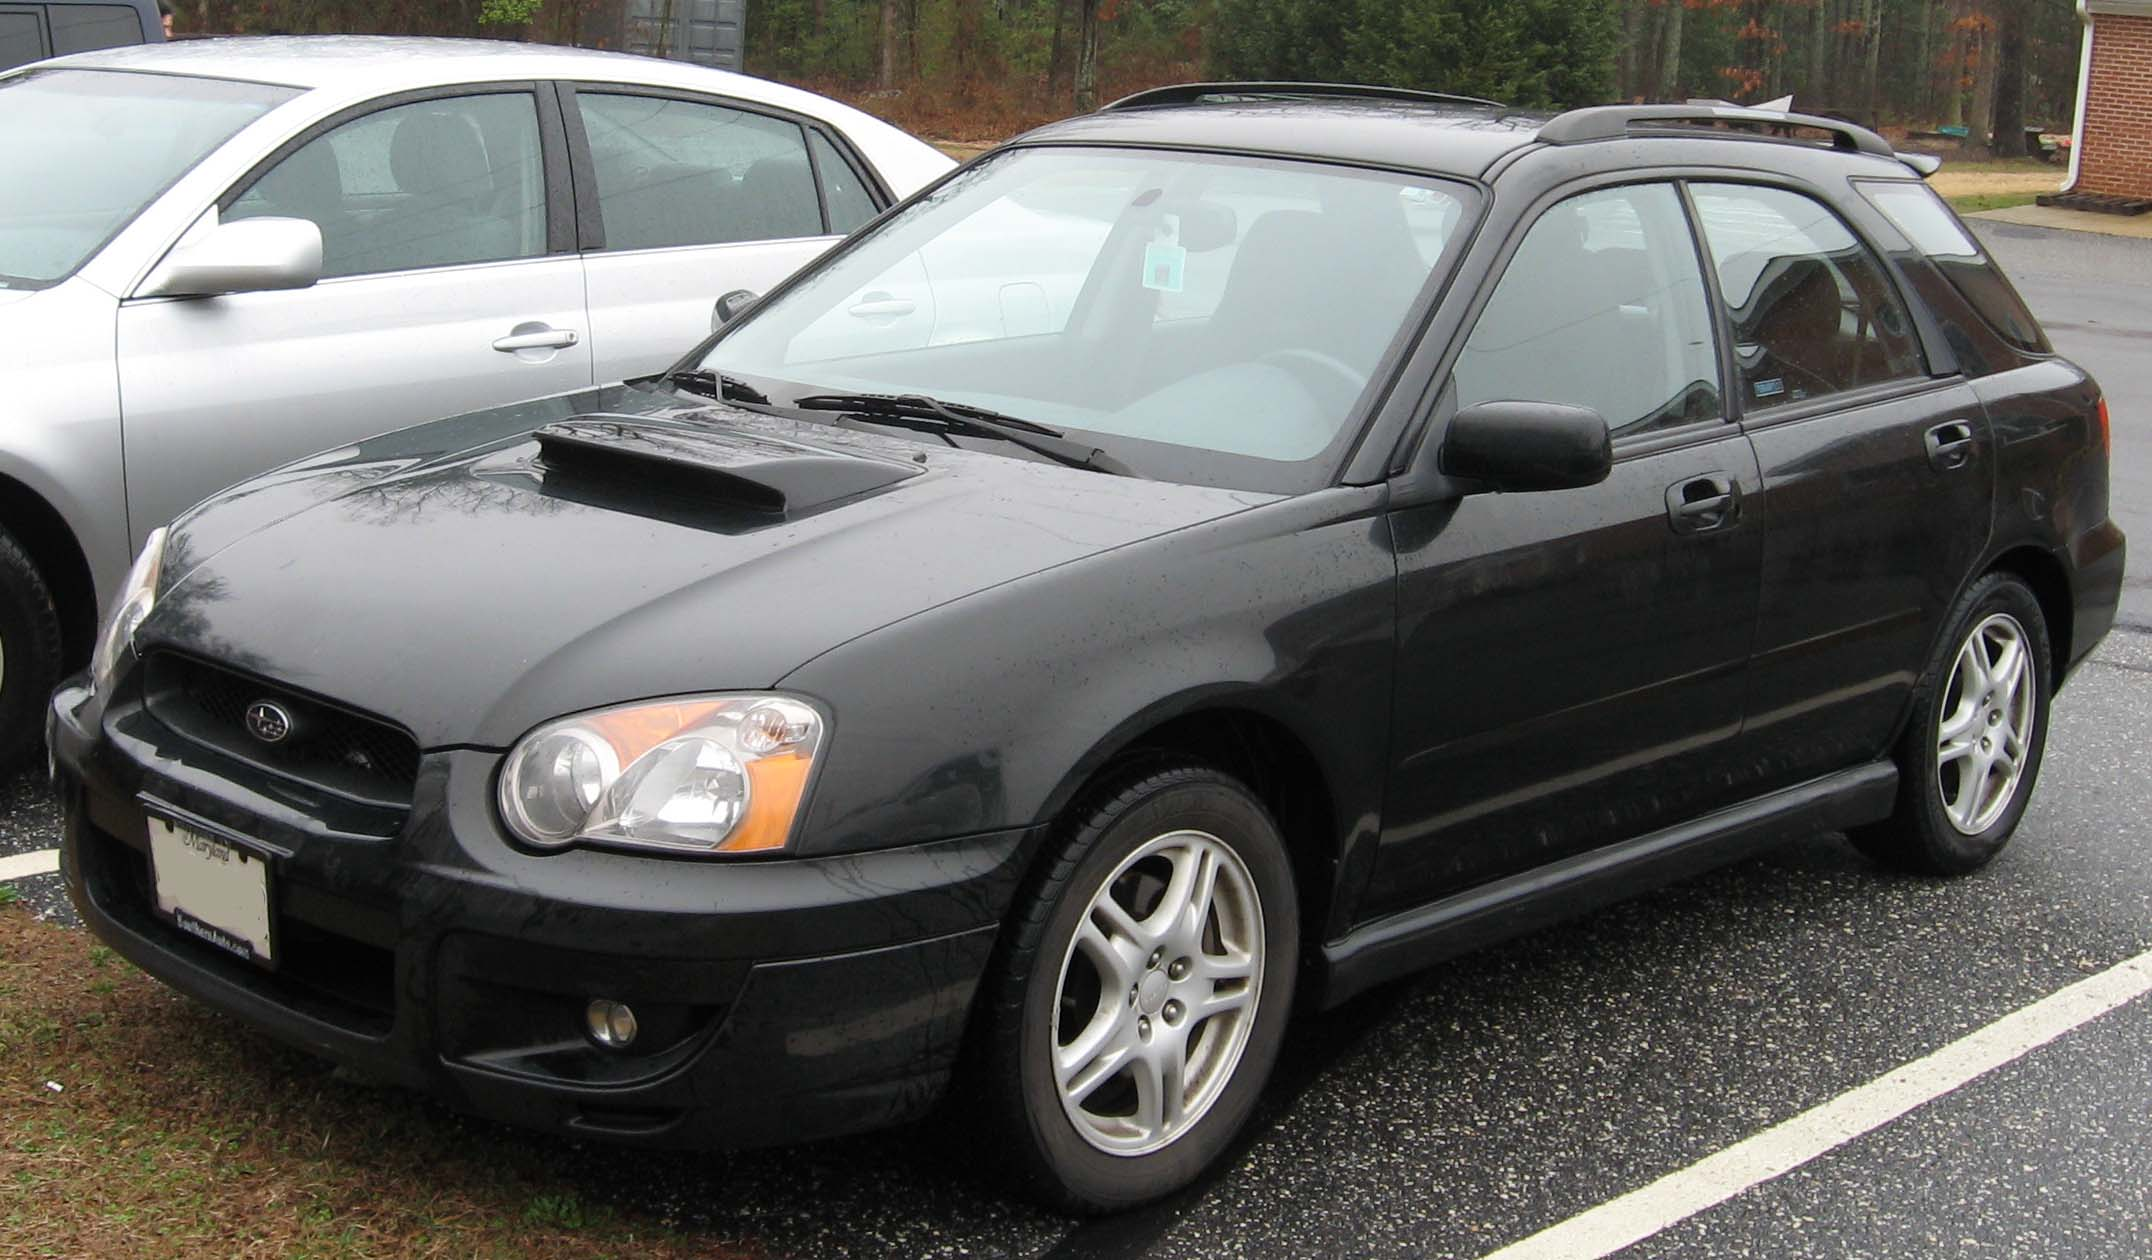 Filesubaru wrx wagong wikimedia commons filesubaru wrx wagong vanachro Gallery